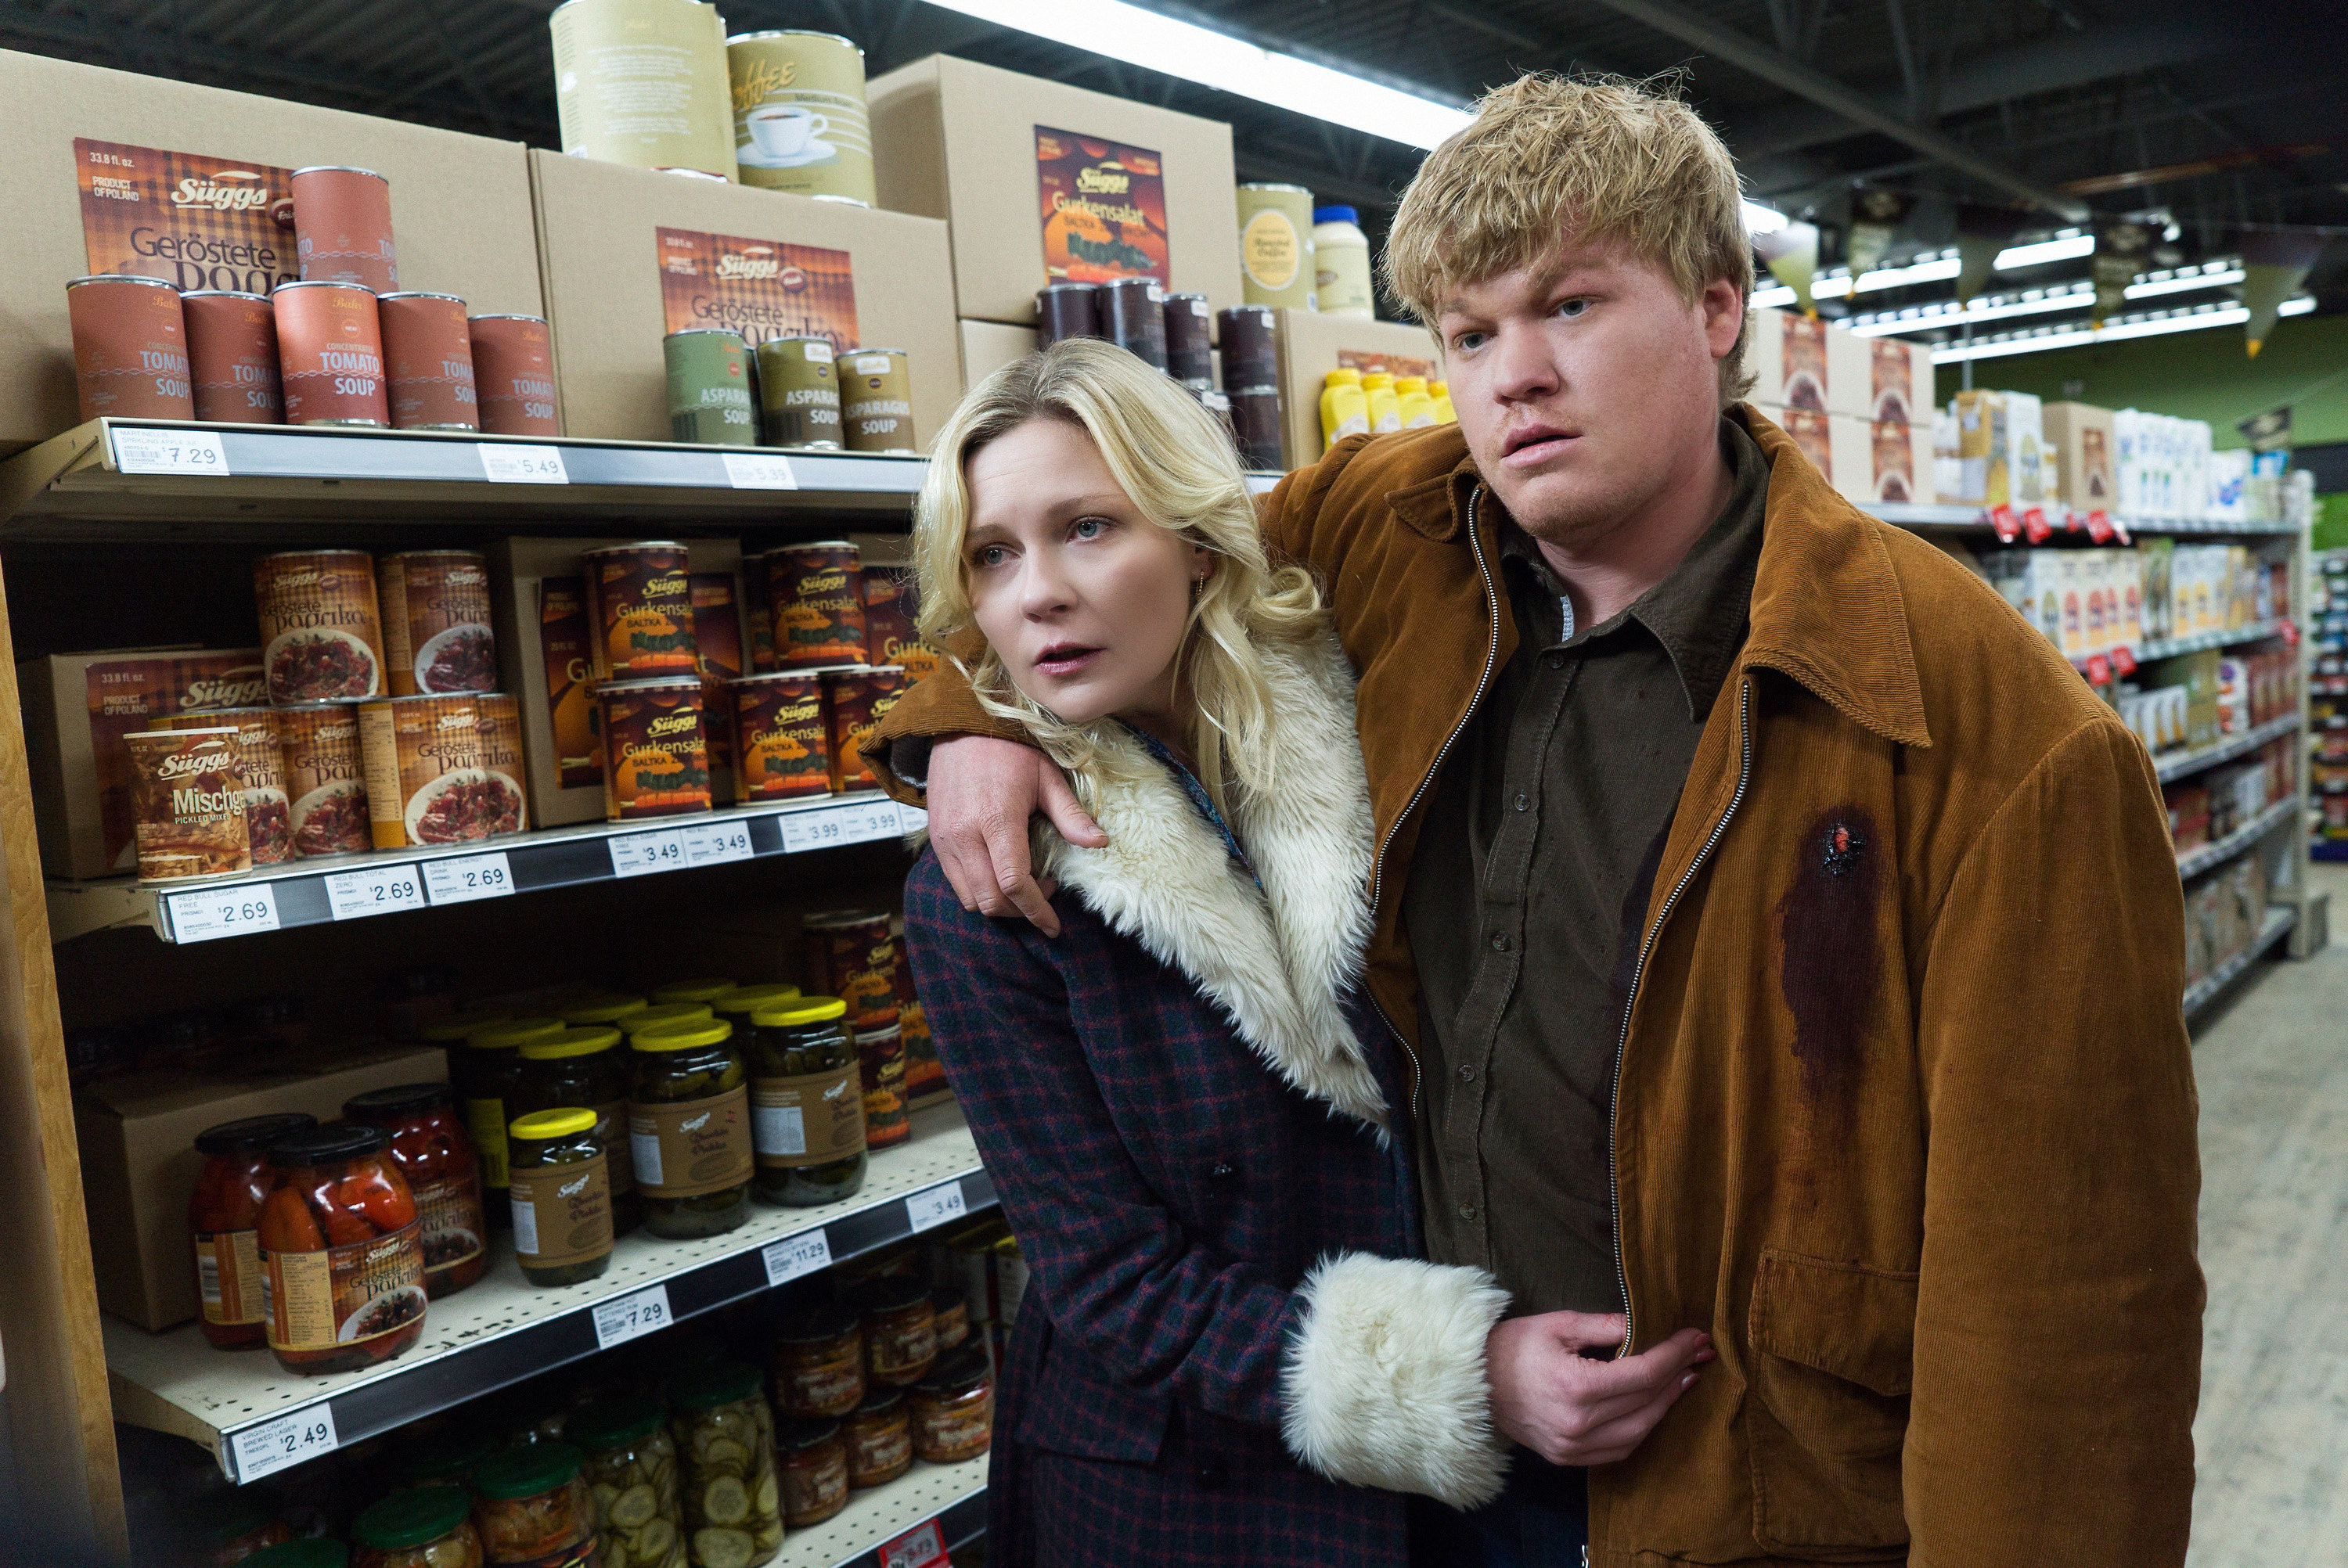 The couple at the grocery store